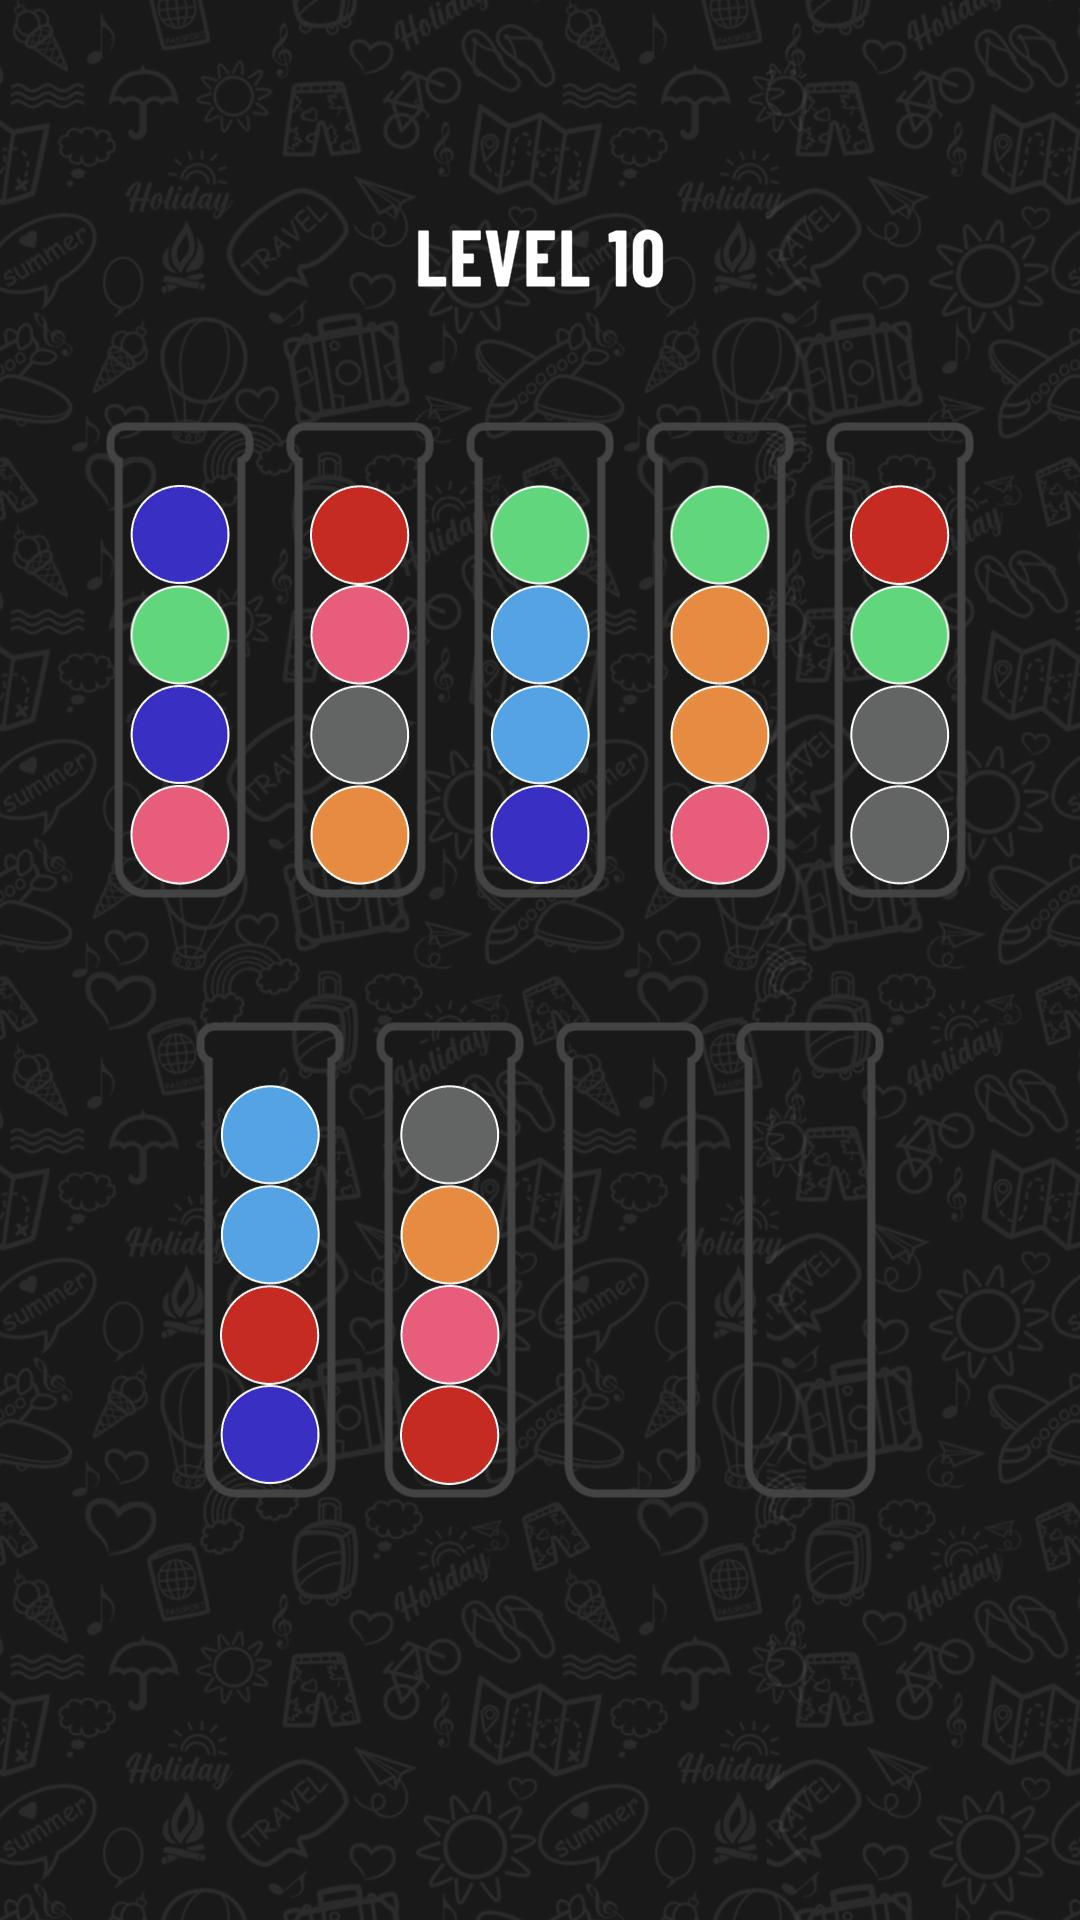 Ball Sort Puzzle For Android Apk Download